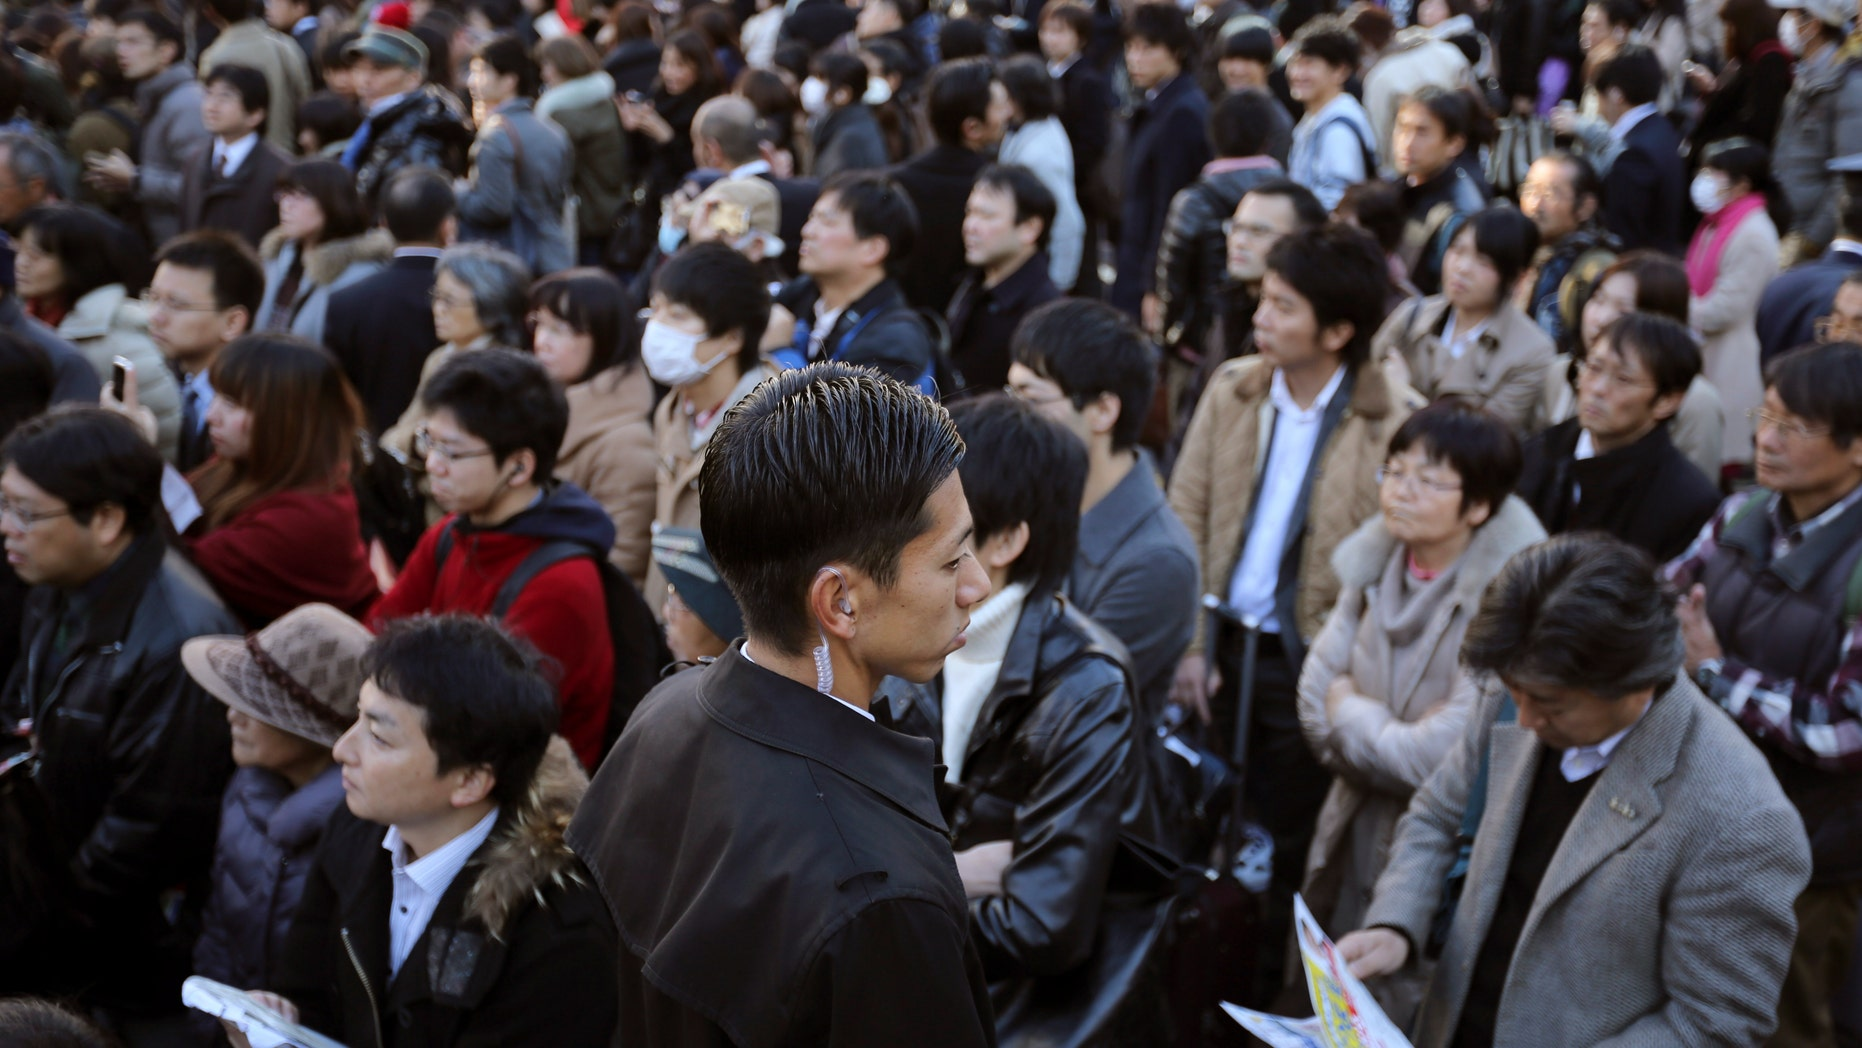 Dec. 13, 2014: A plainclothes police officer, center, stands guard as supporters and passersby listen to a speech by Banri Kaieda